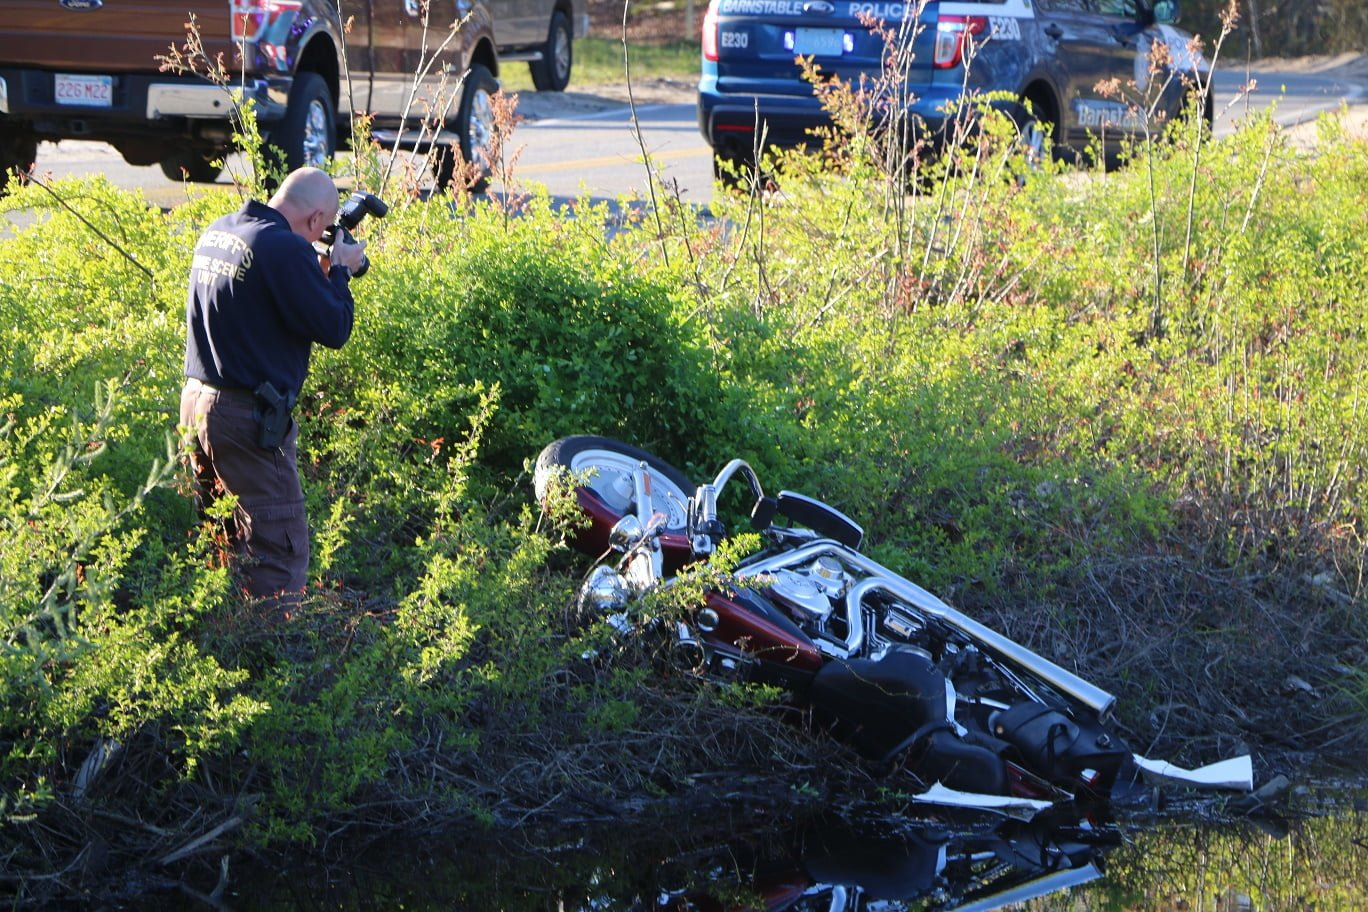 VIDEO: Motorcycle flew into ditch… driver transported to CCH…